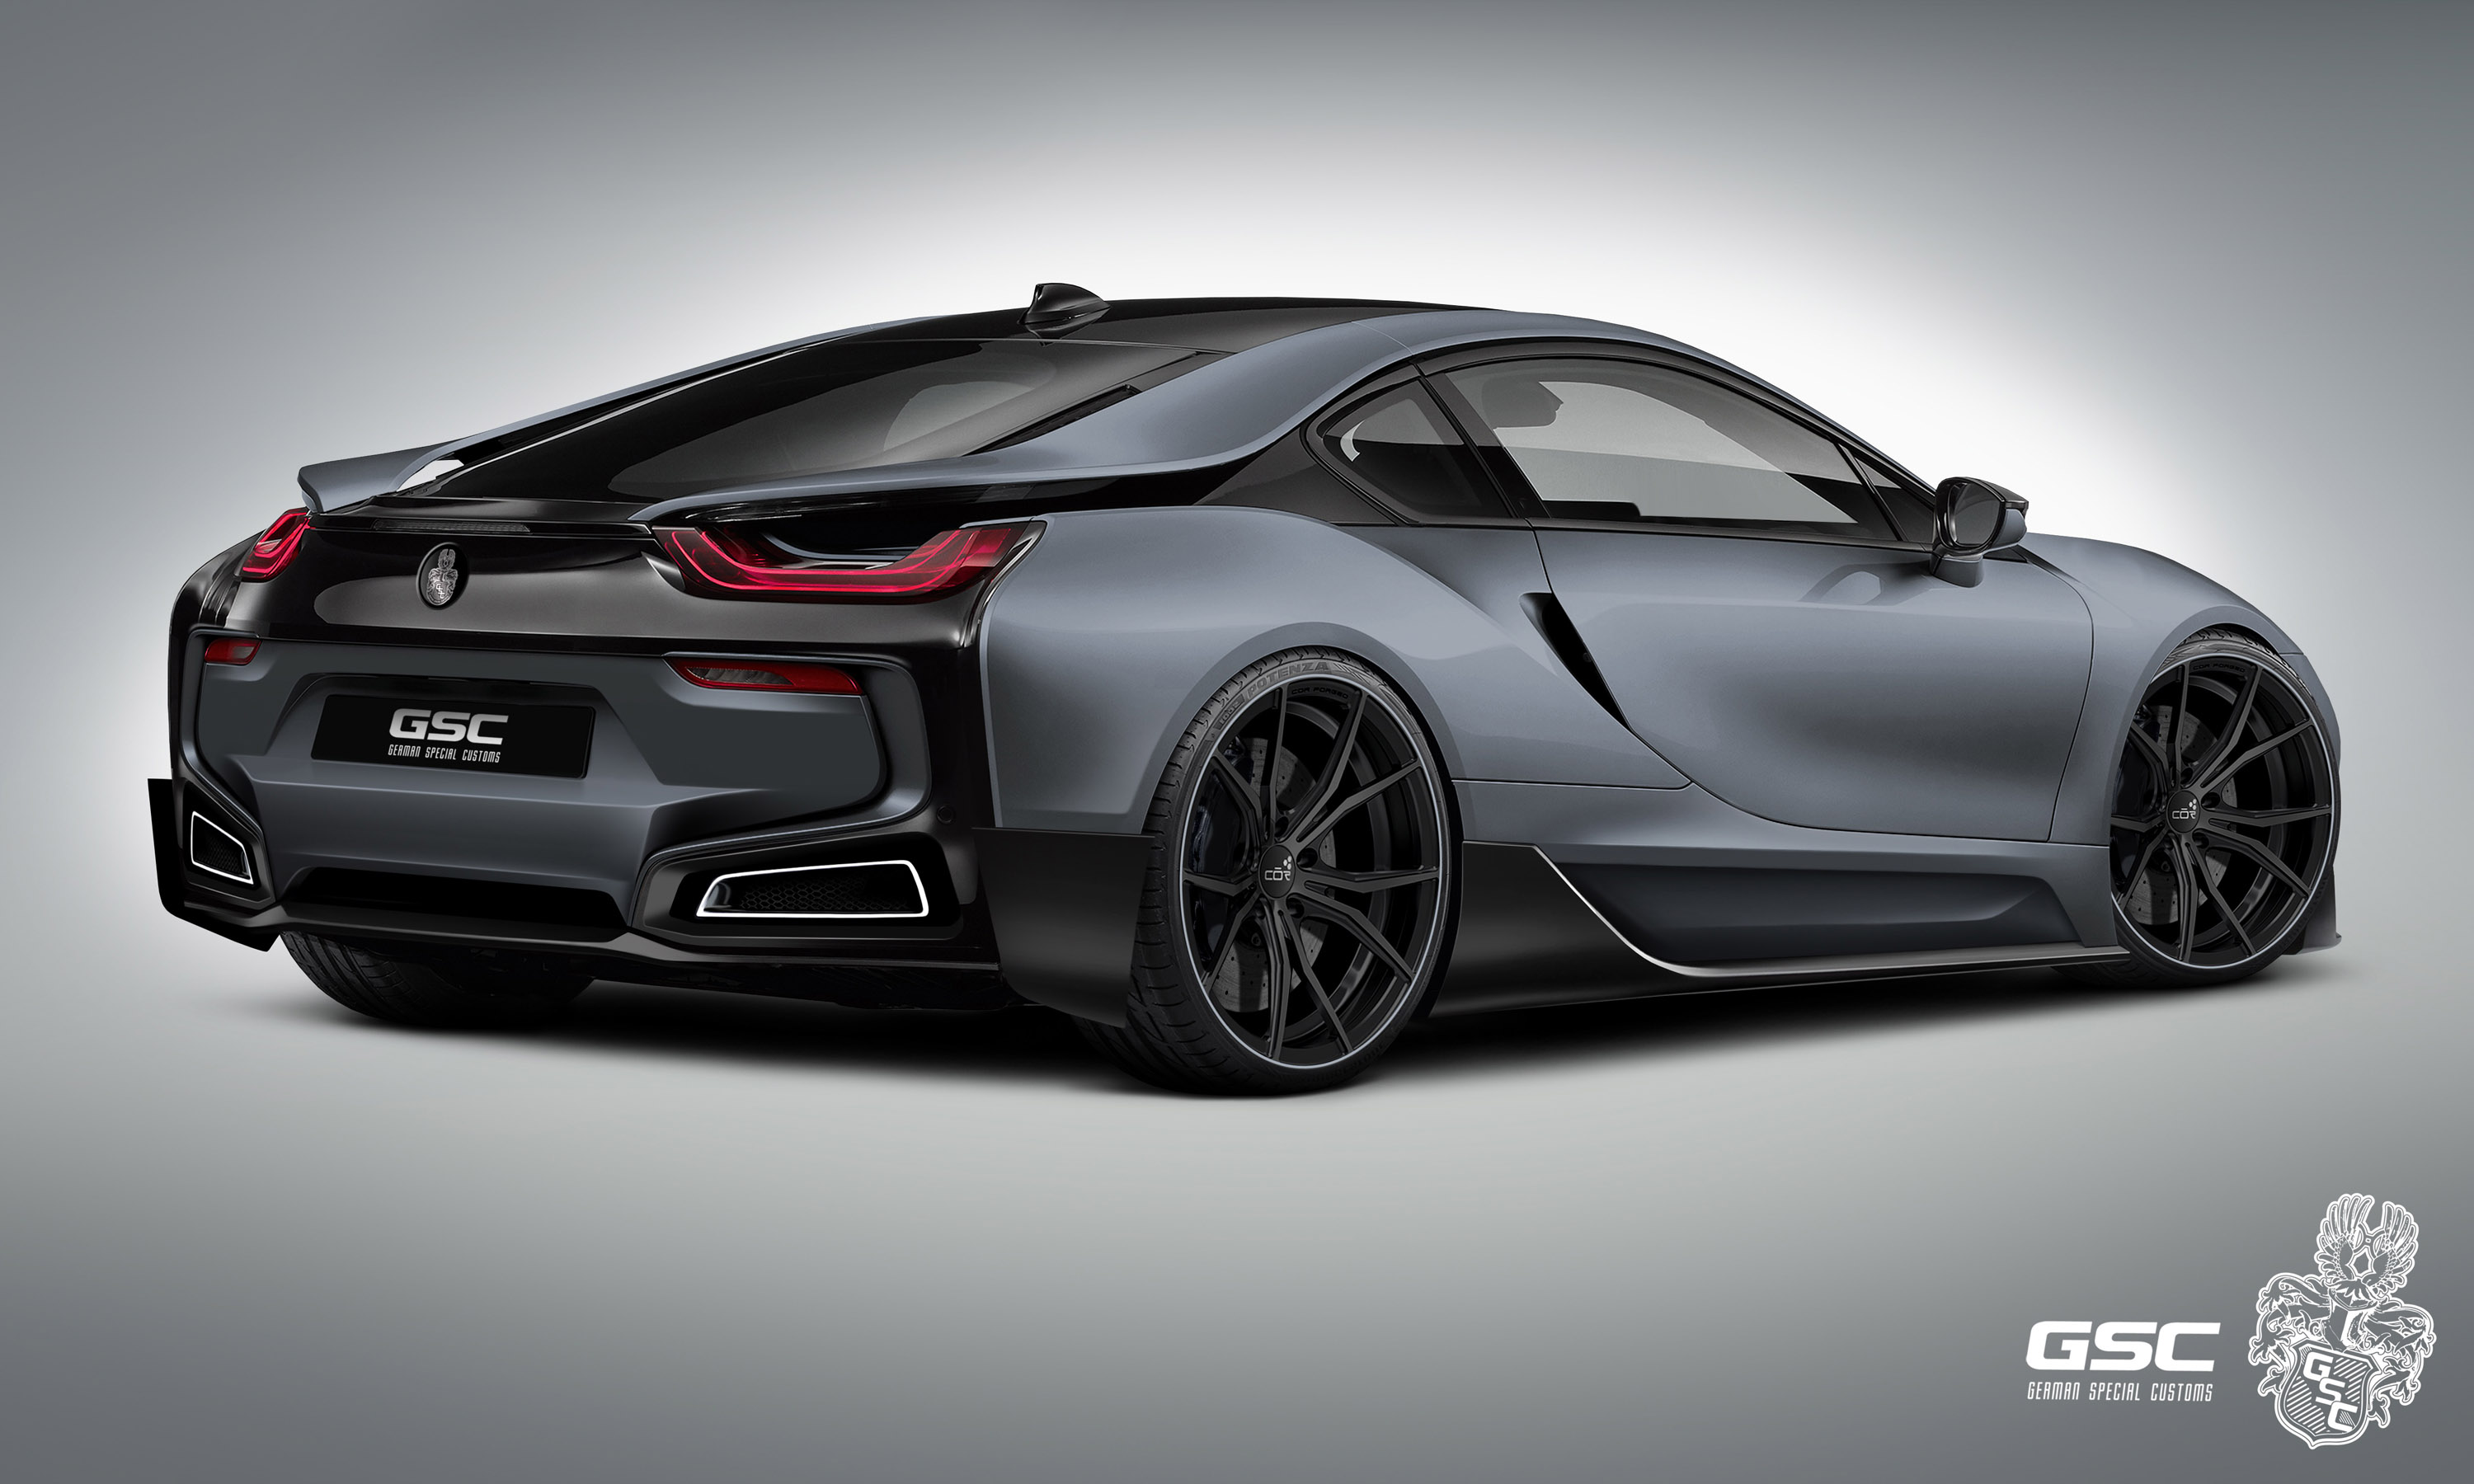 Bmw Luxury Cars Hd Wallpapers German Special Customs Previews The Bmw I8 Itron